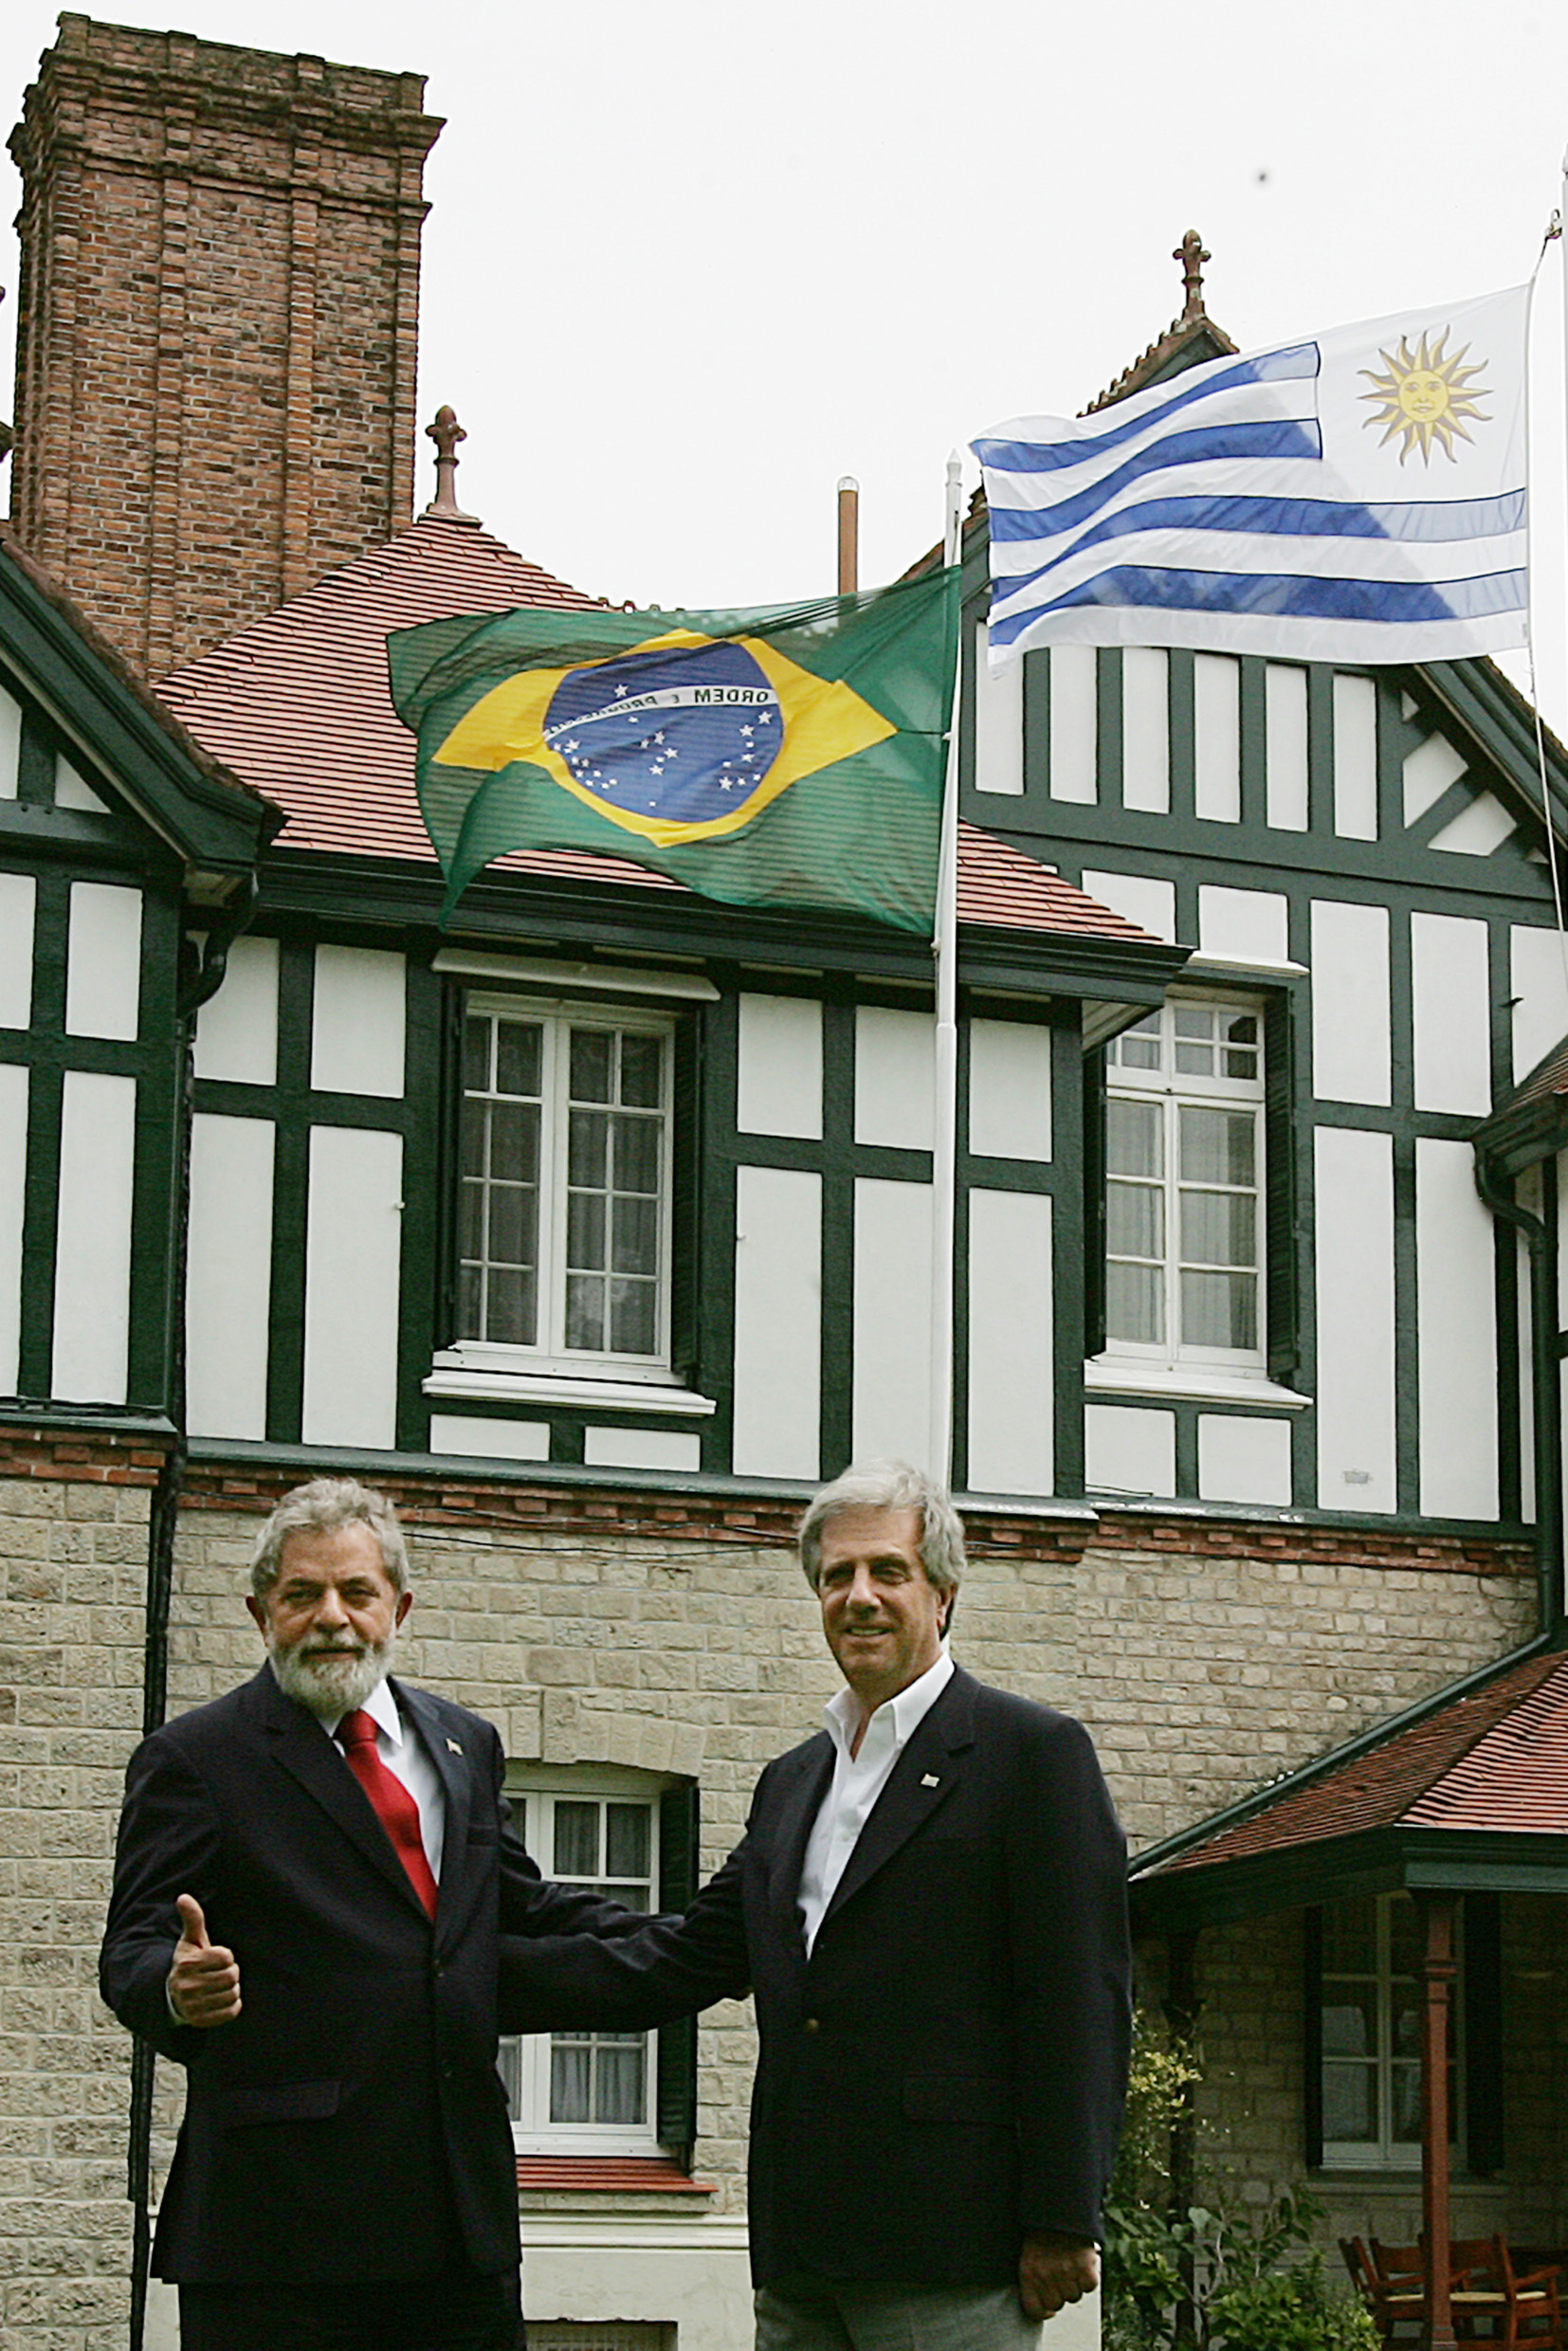 Tabaré Vázquez (President from 2005–2010, 2015–present) with then-President of Brazil Lula da Silva in 2007.